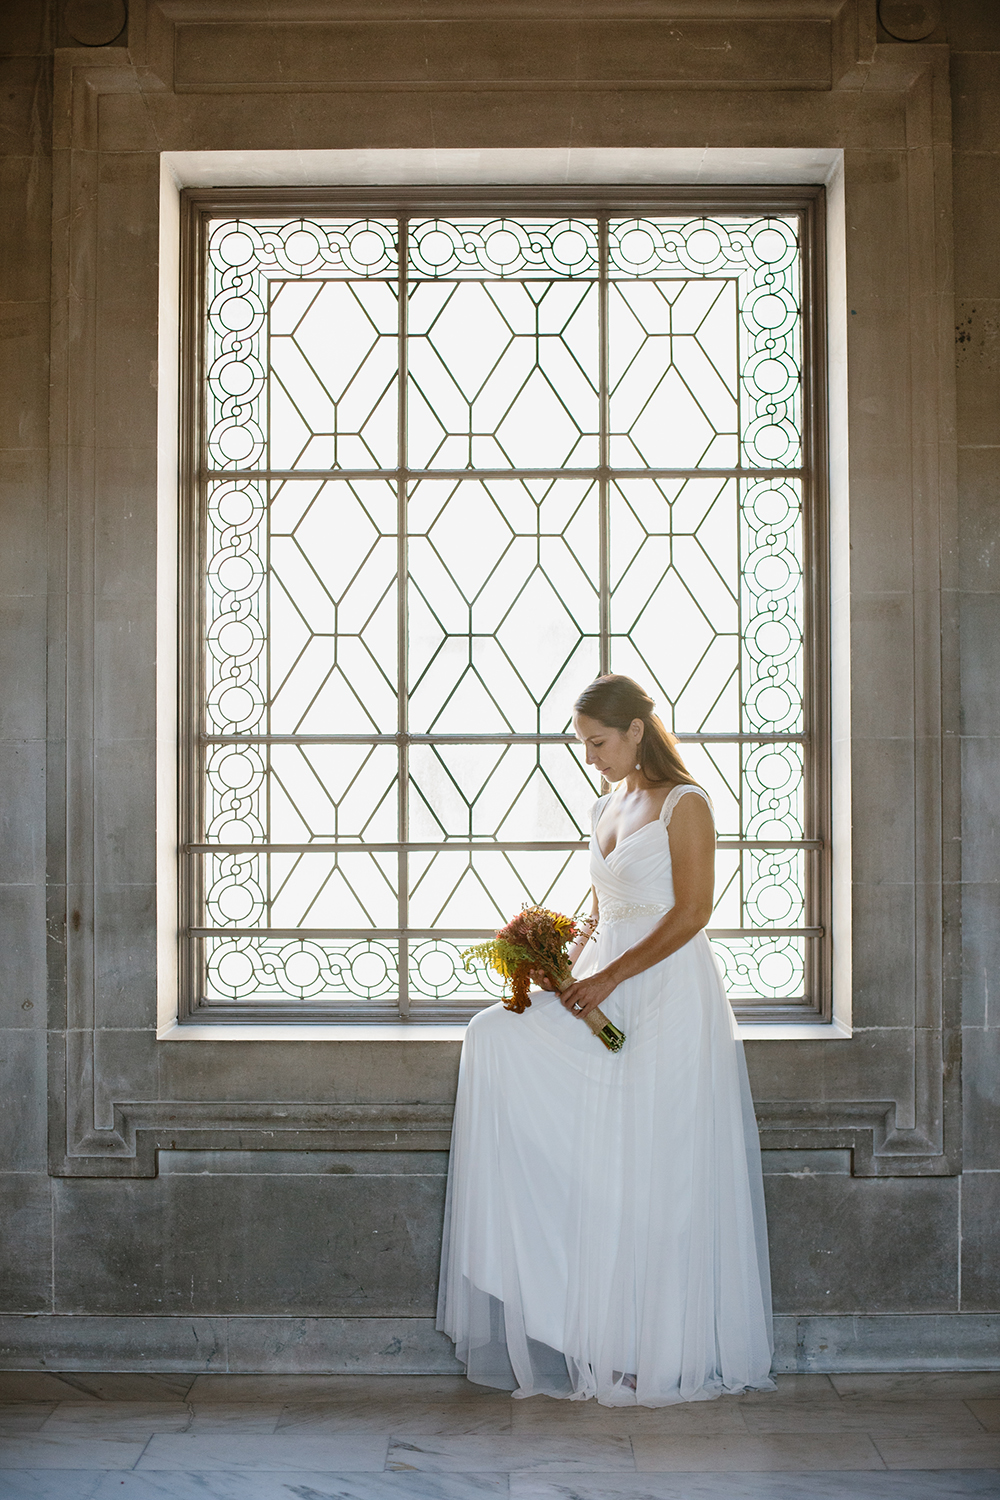 Bride sitting by window after her wedding in San Francisco City Hall.